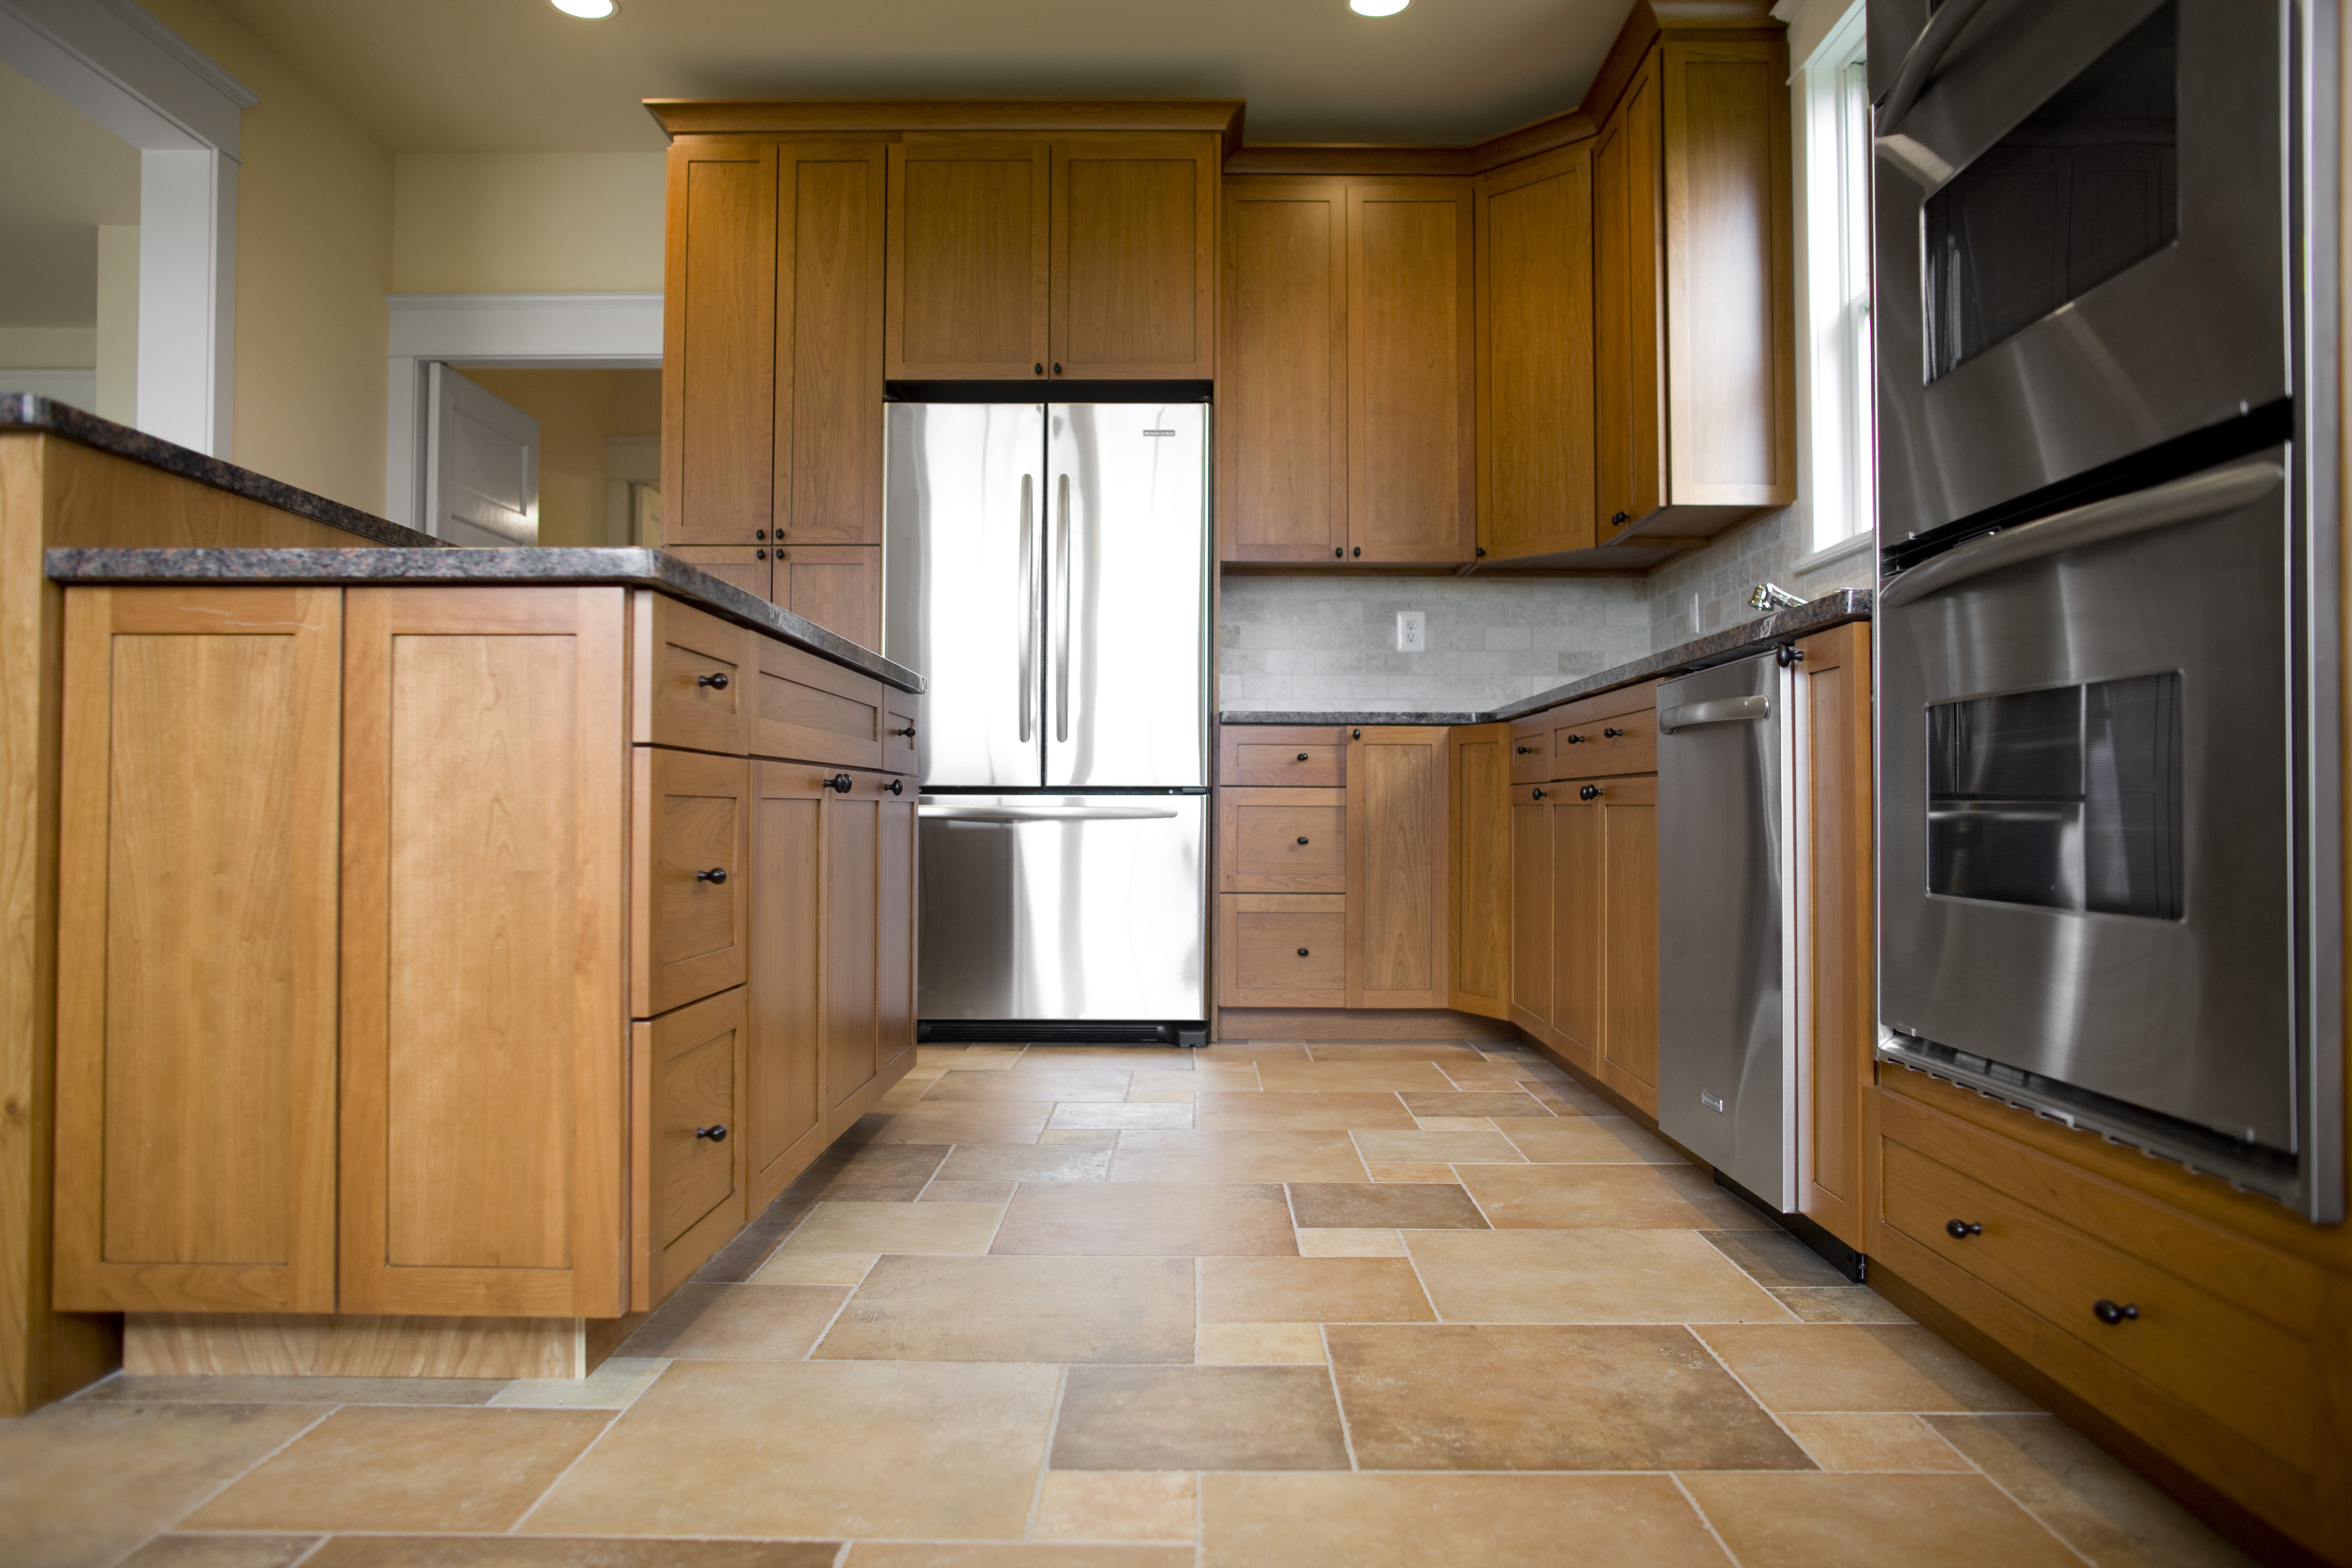 newly remodeled kitchen in hanover pa - Newly Remodeled Kitchens